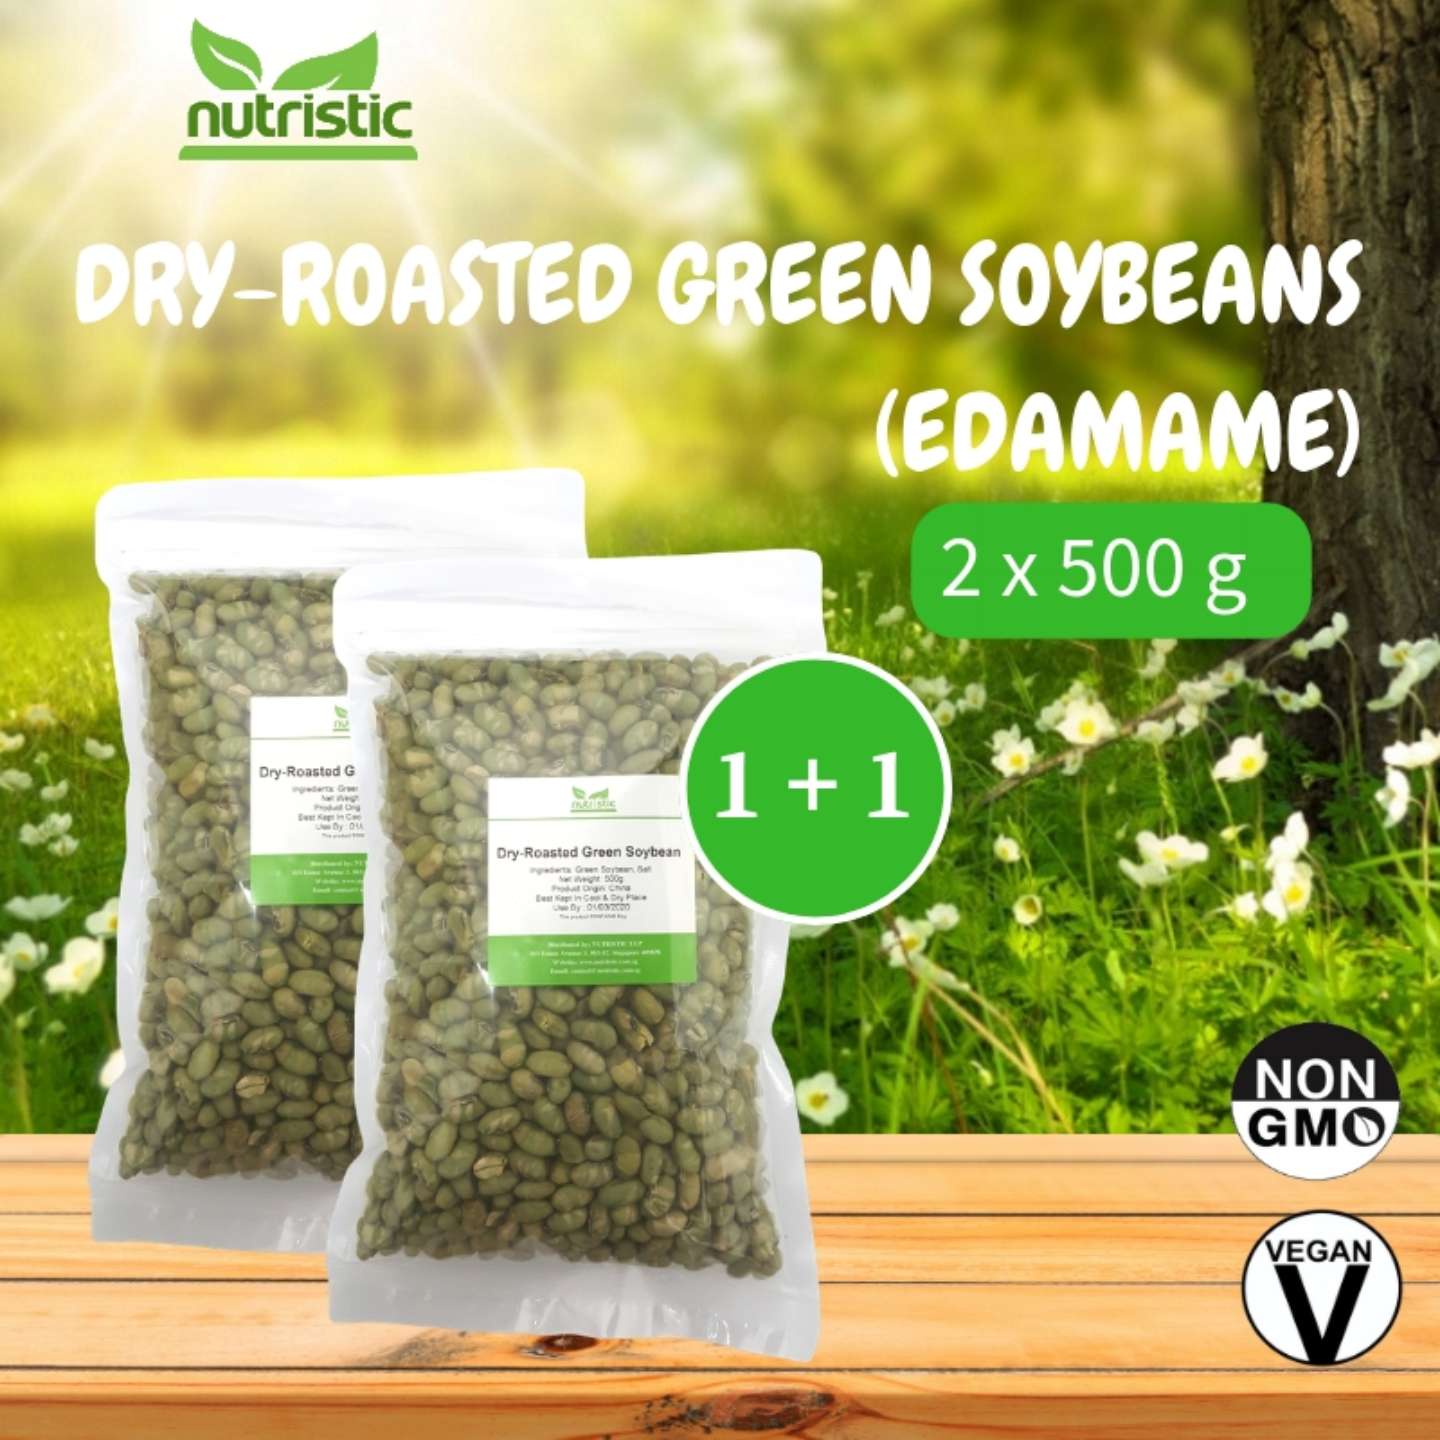 Dry-Roasted Green Soybeans Edamame 500g x2 - Value Bundle